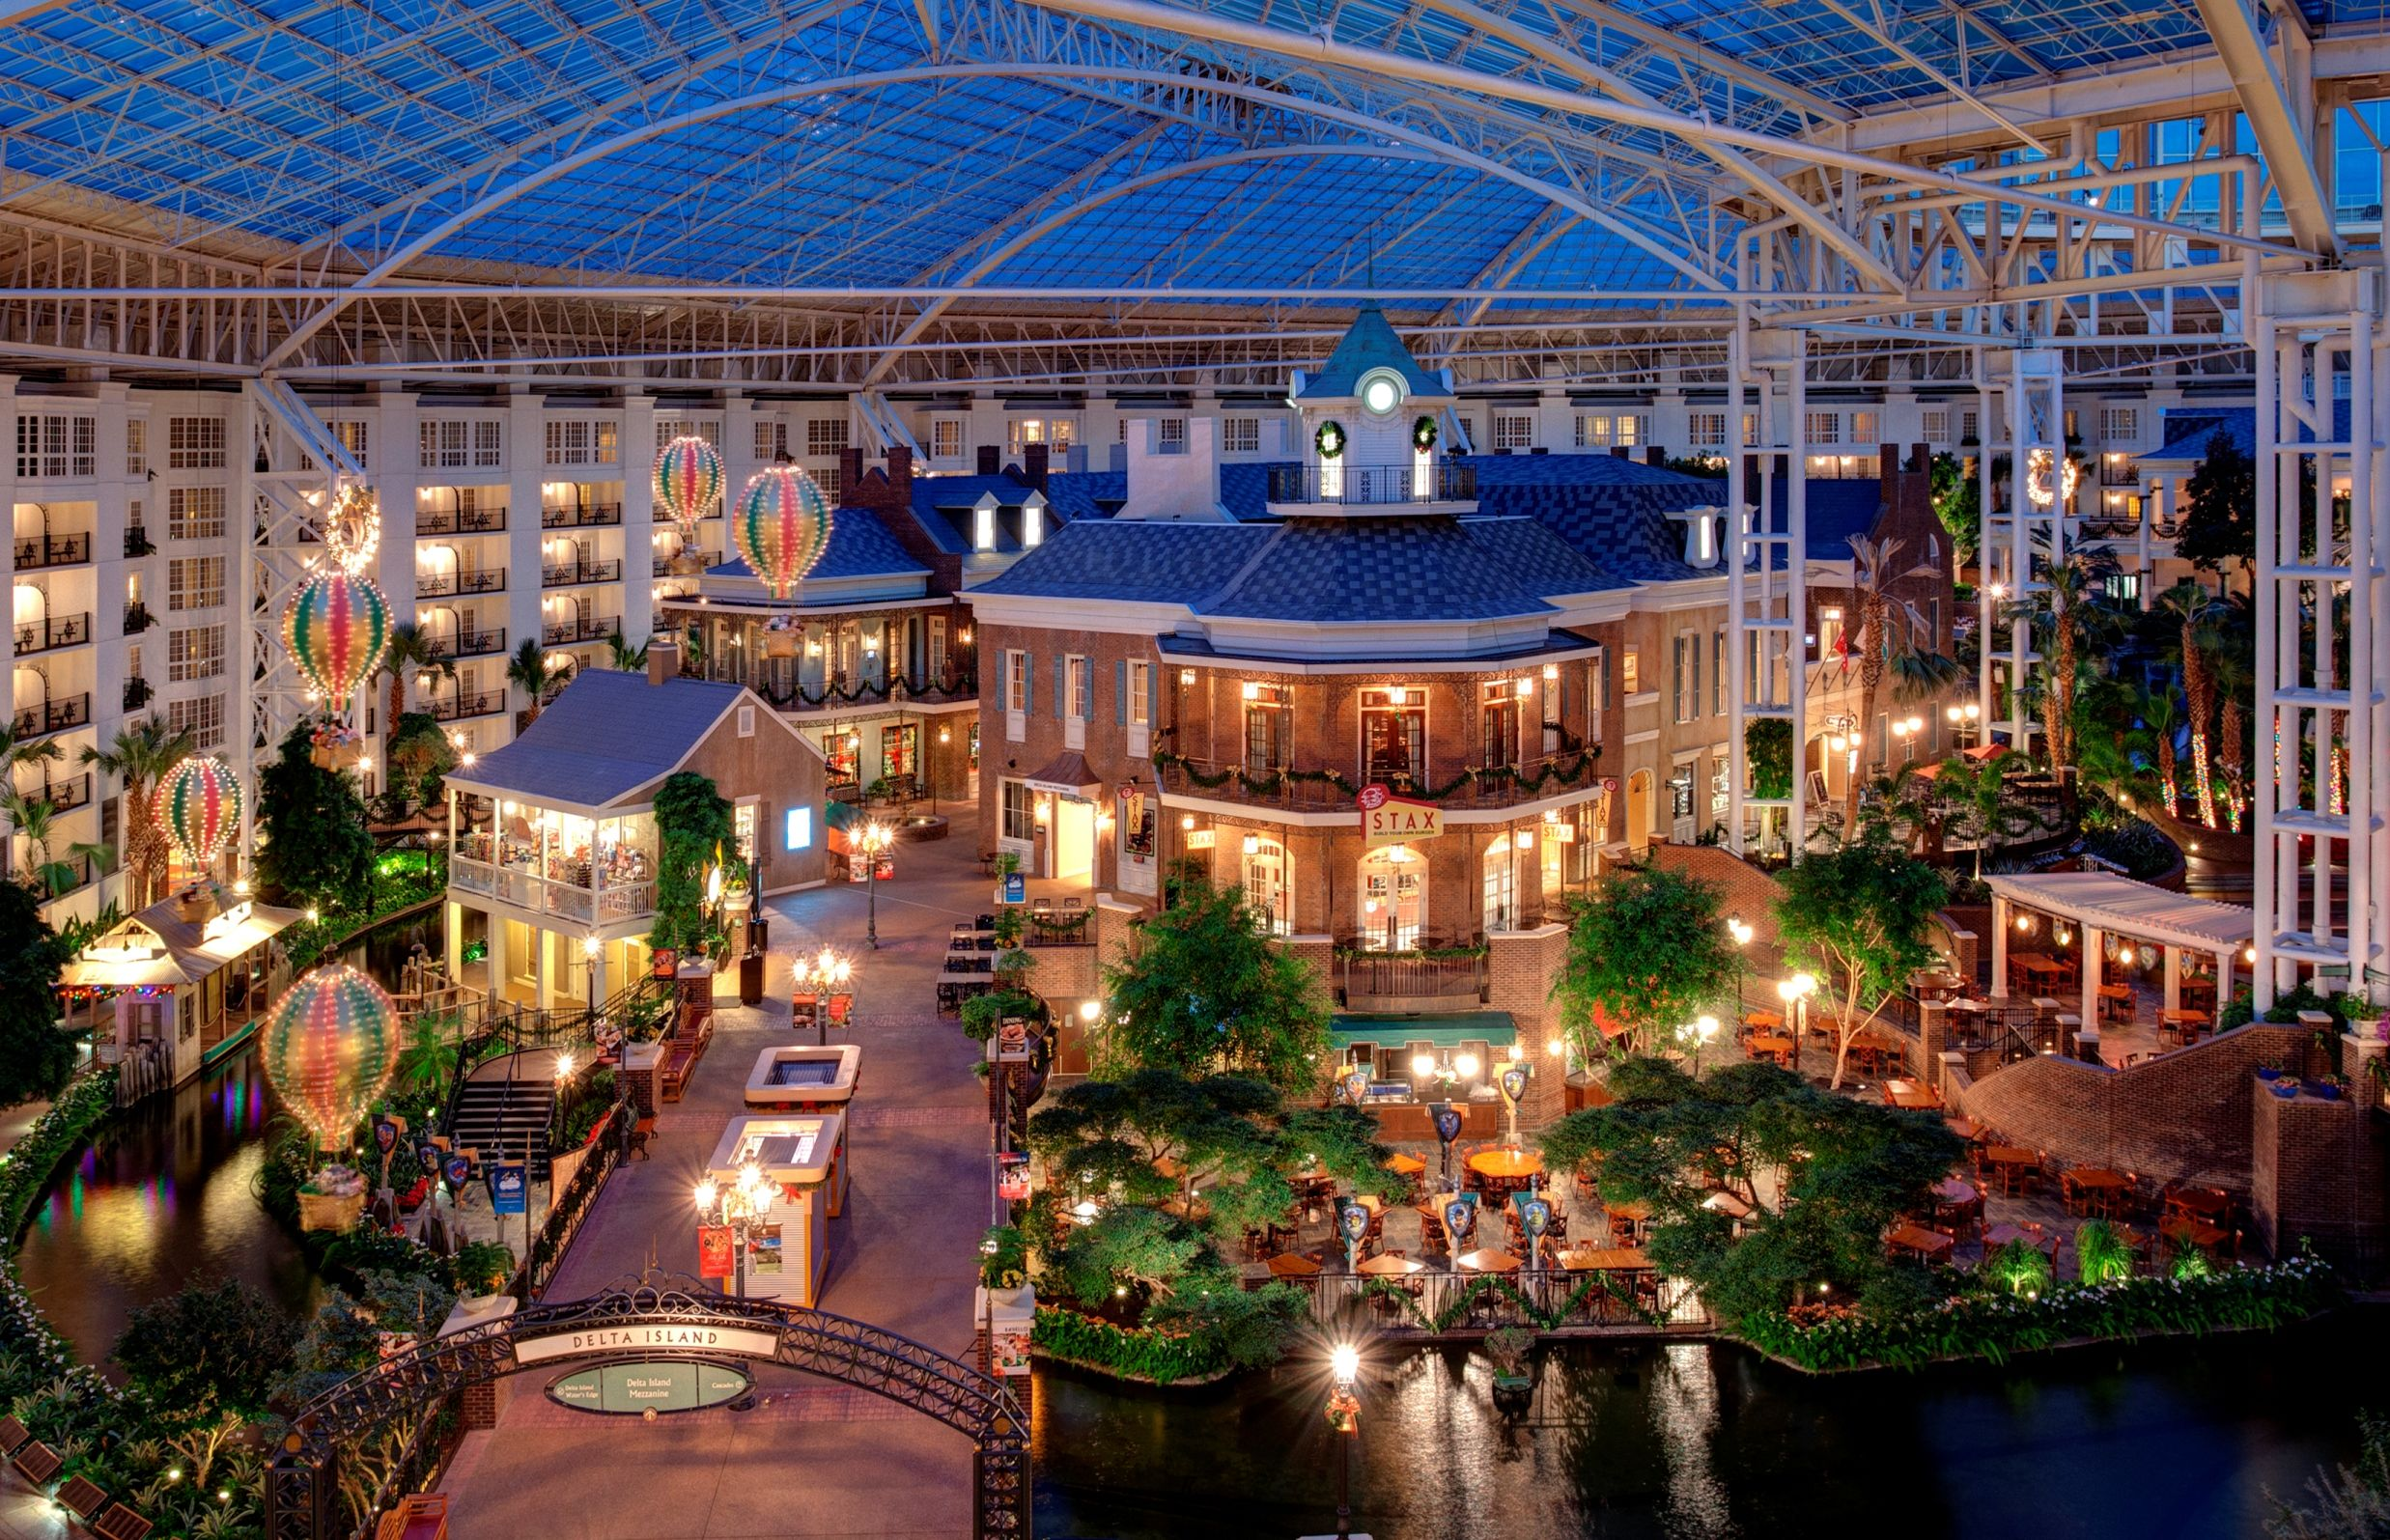 Pin by Drew Evans on Southern Charm | Opryland hotel, Opryland hotel nashville, Visit nashville